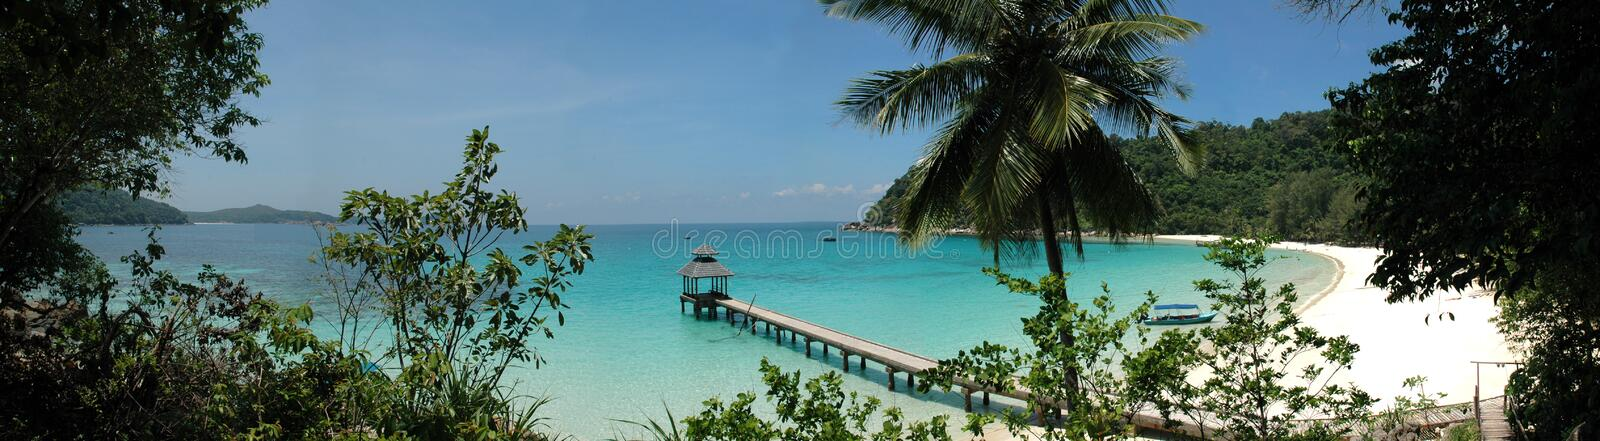 Tropical Beach Jetty stock photos